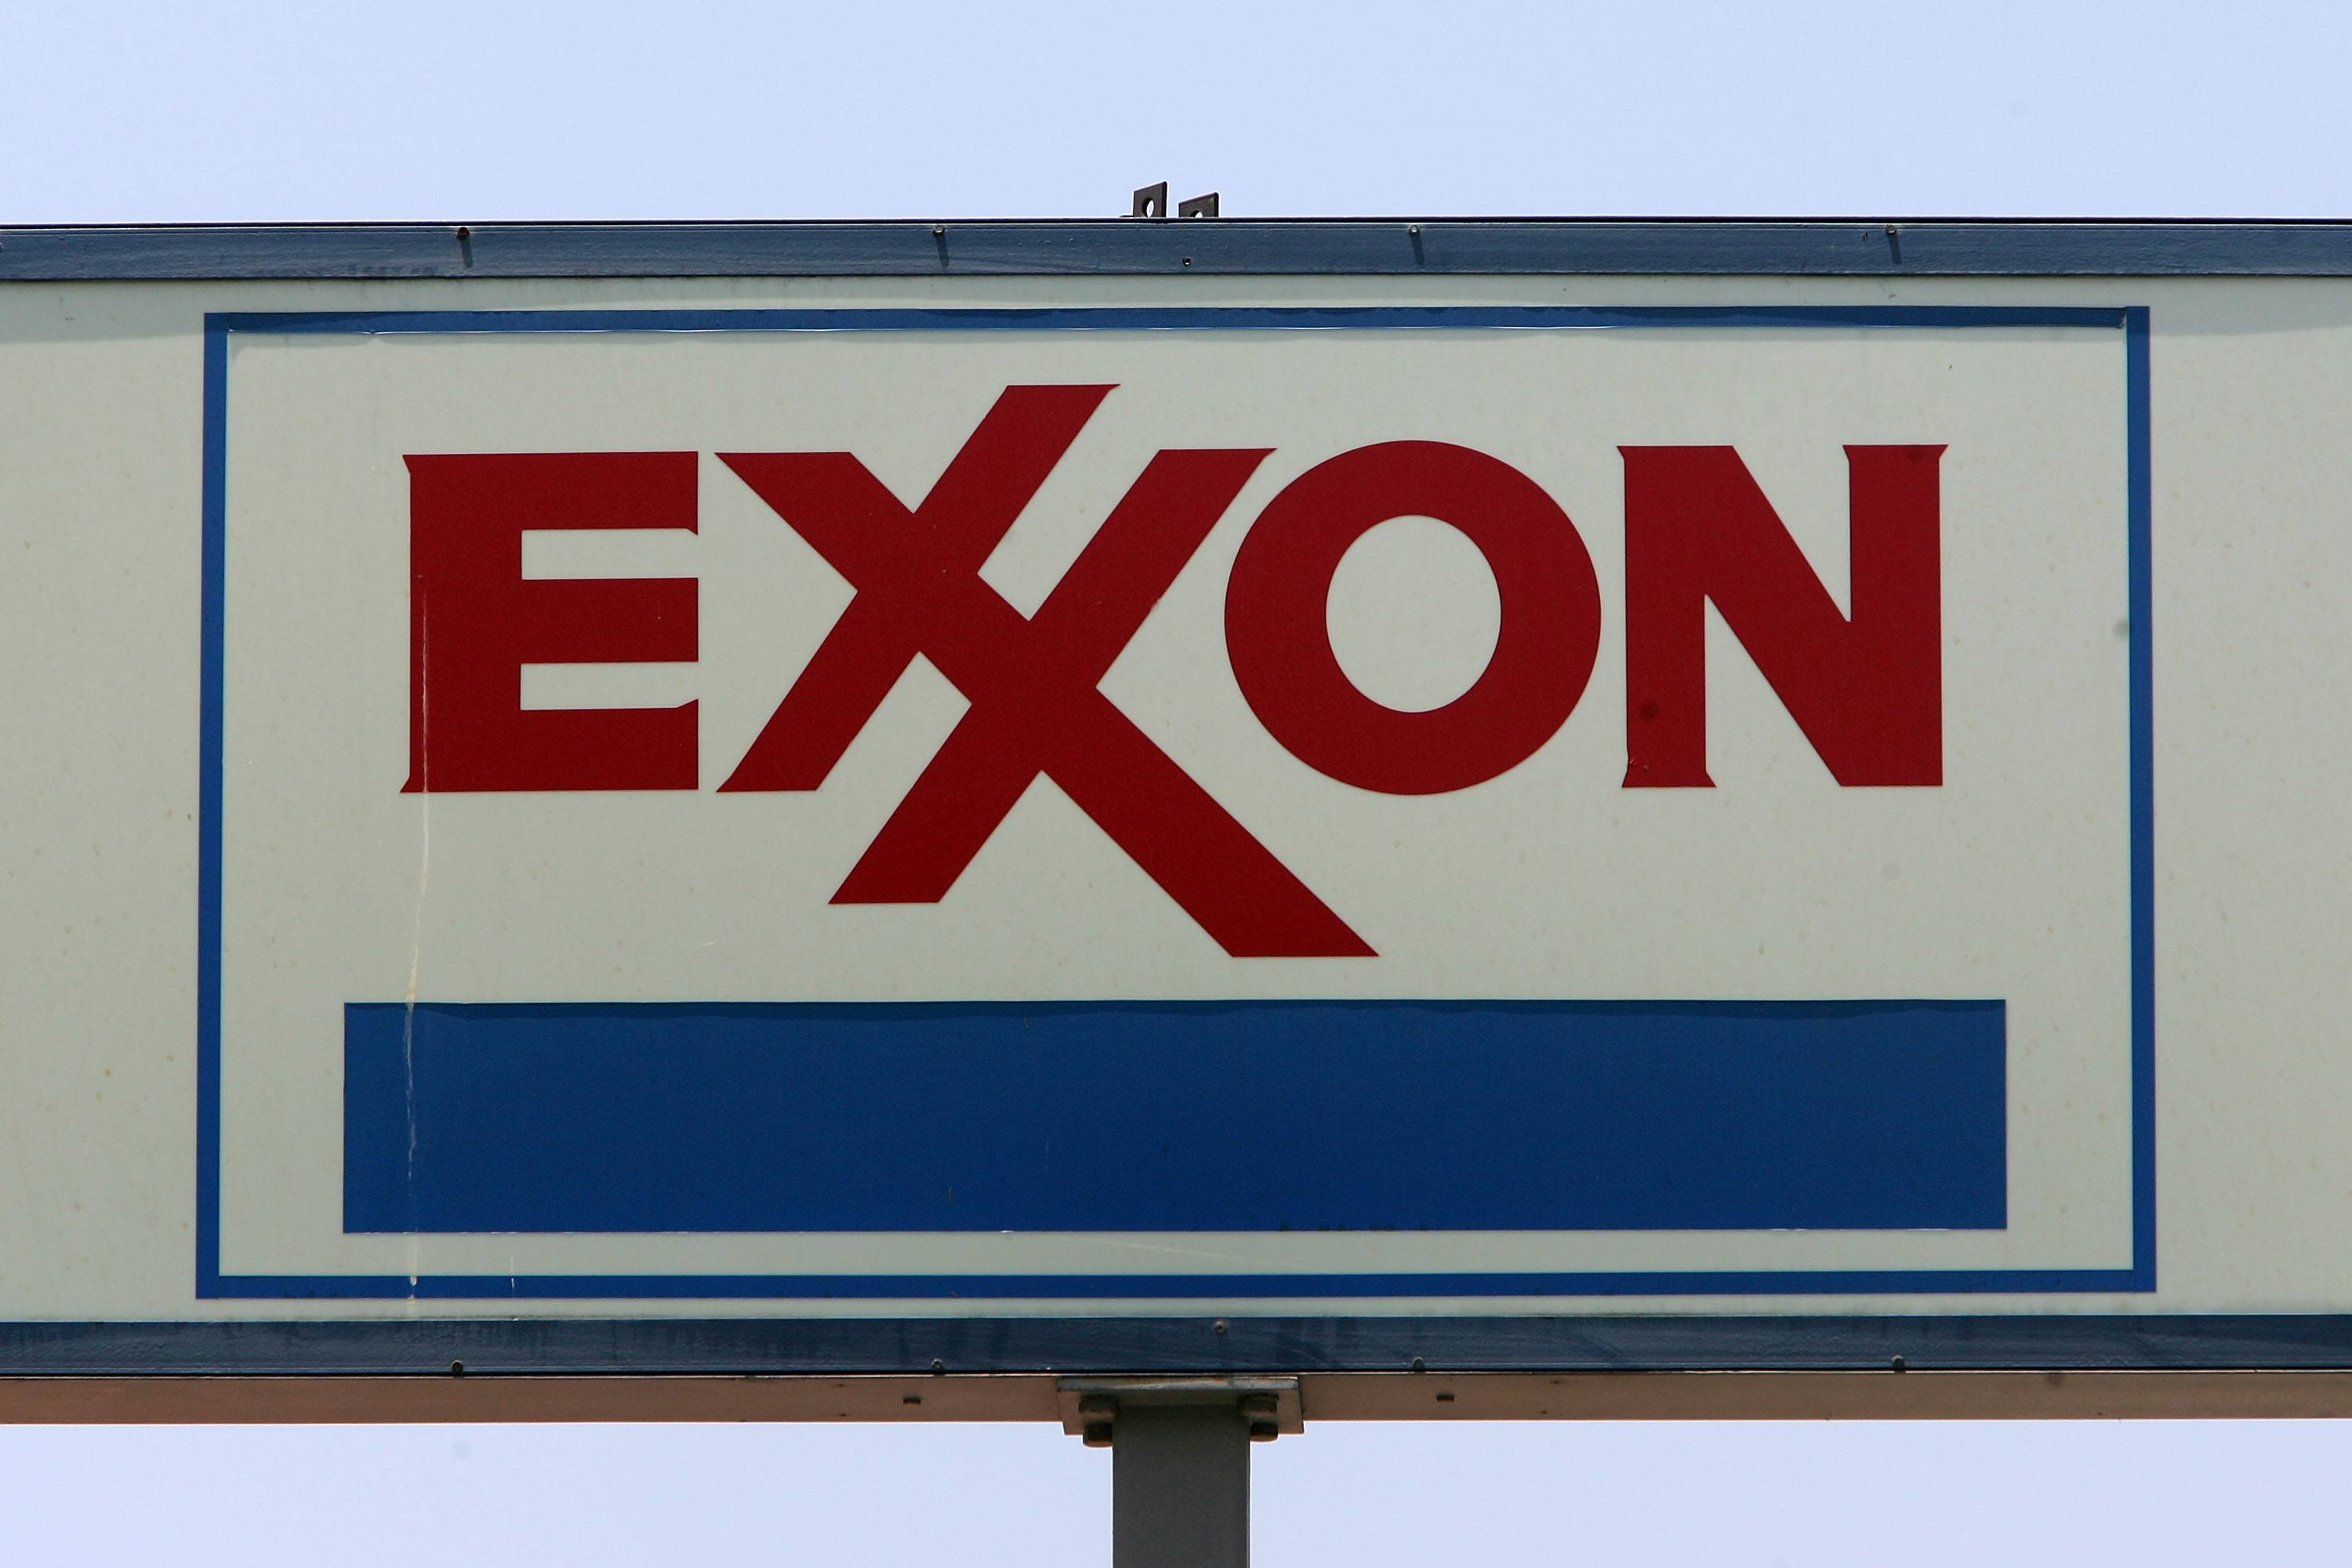 An Exxon sign at a California gas station